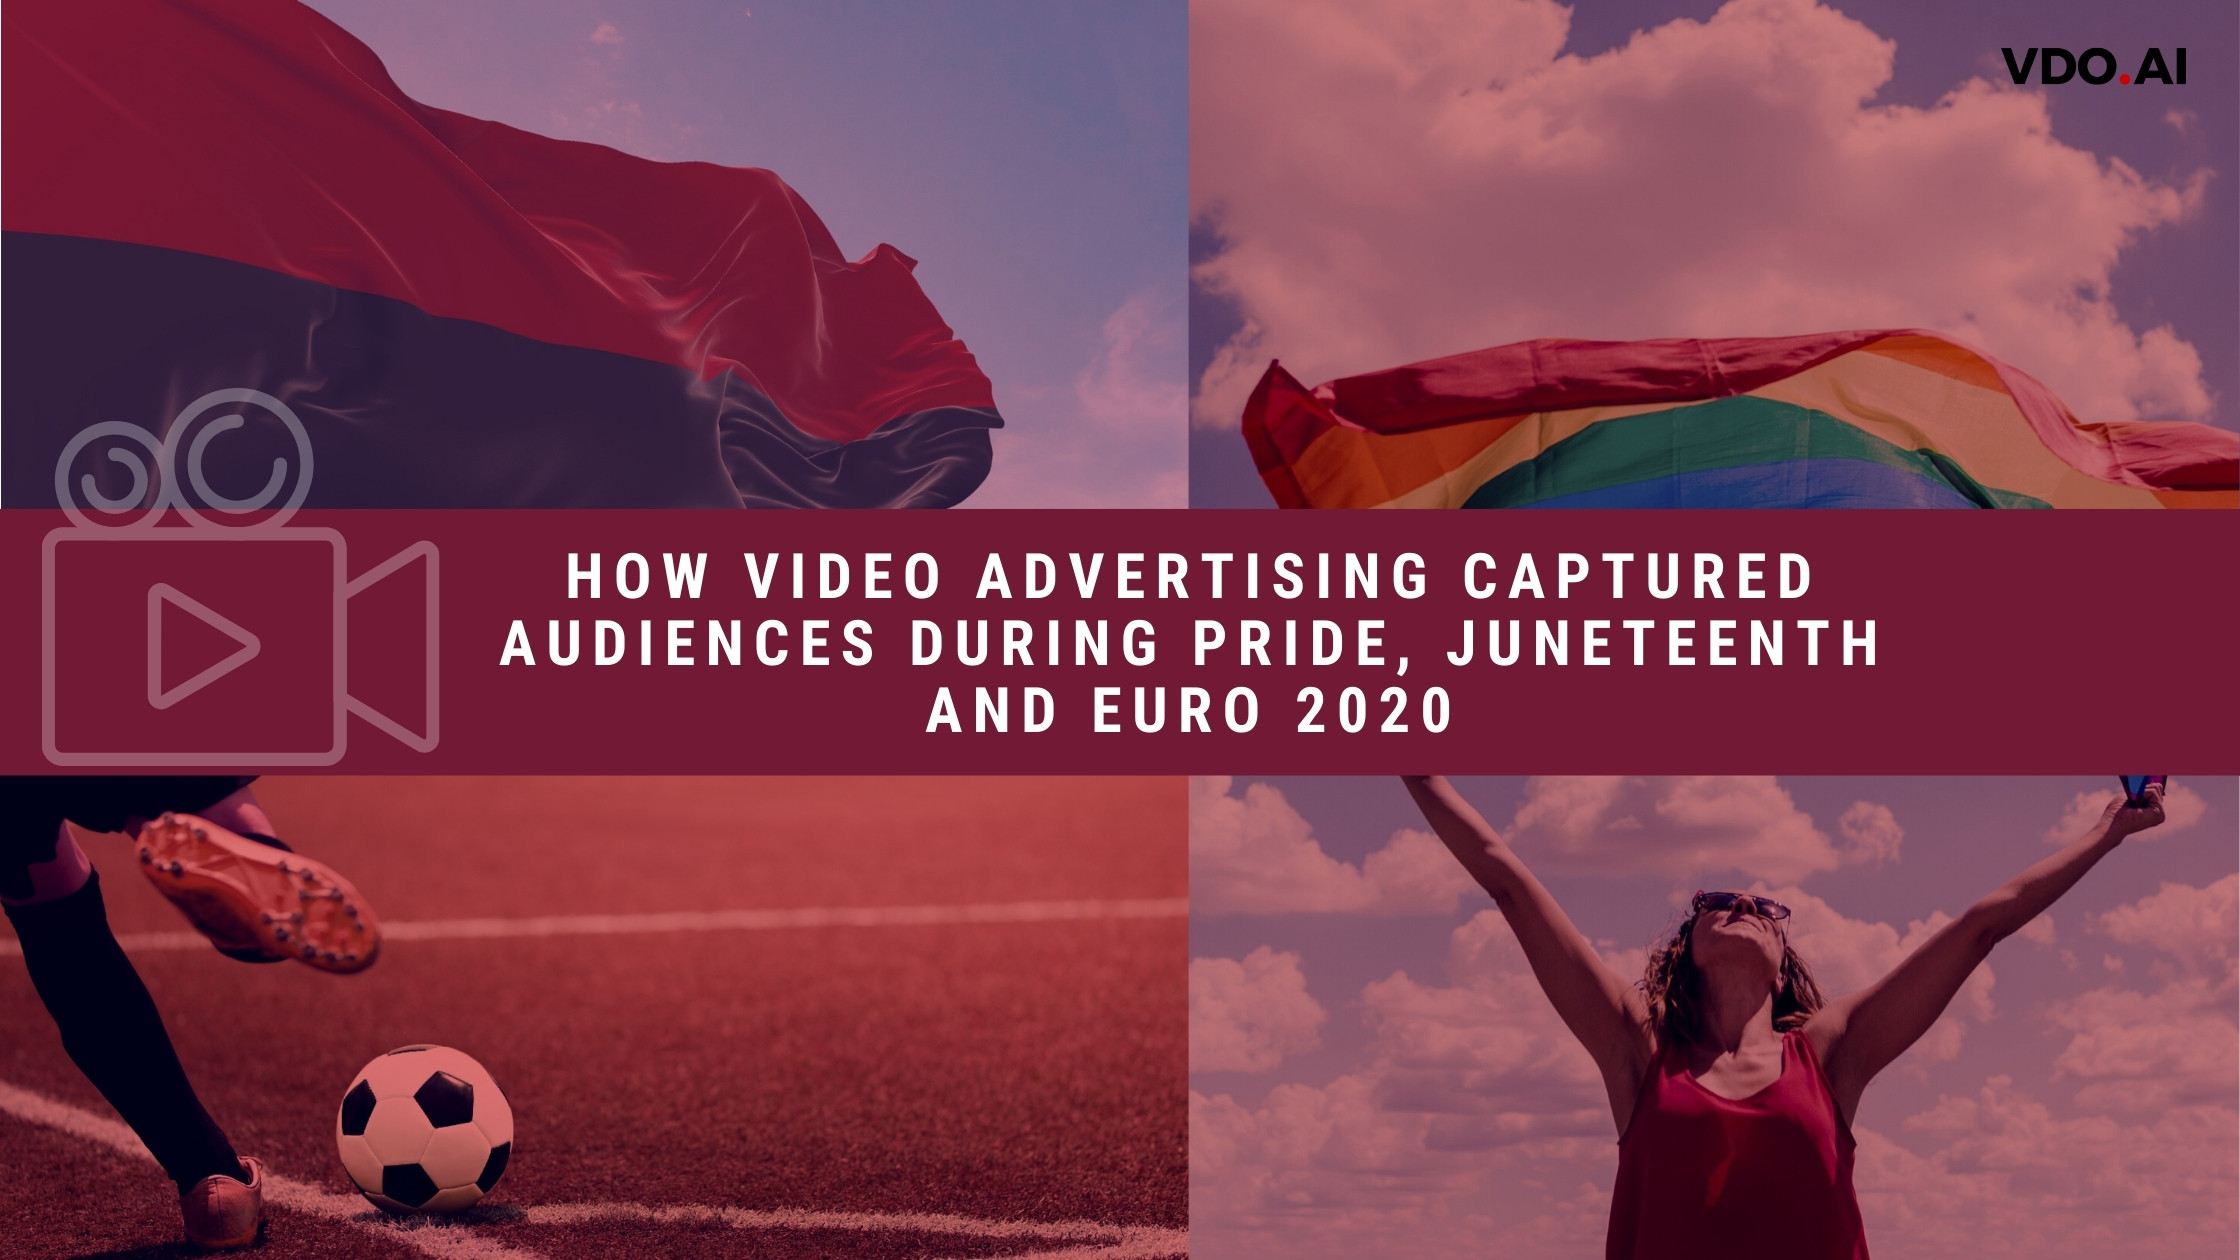 How advertising captured audiences during pride, juneteenth and euro 2020